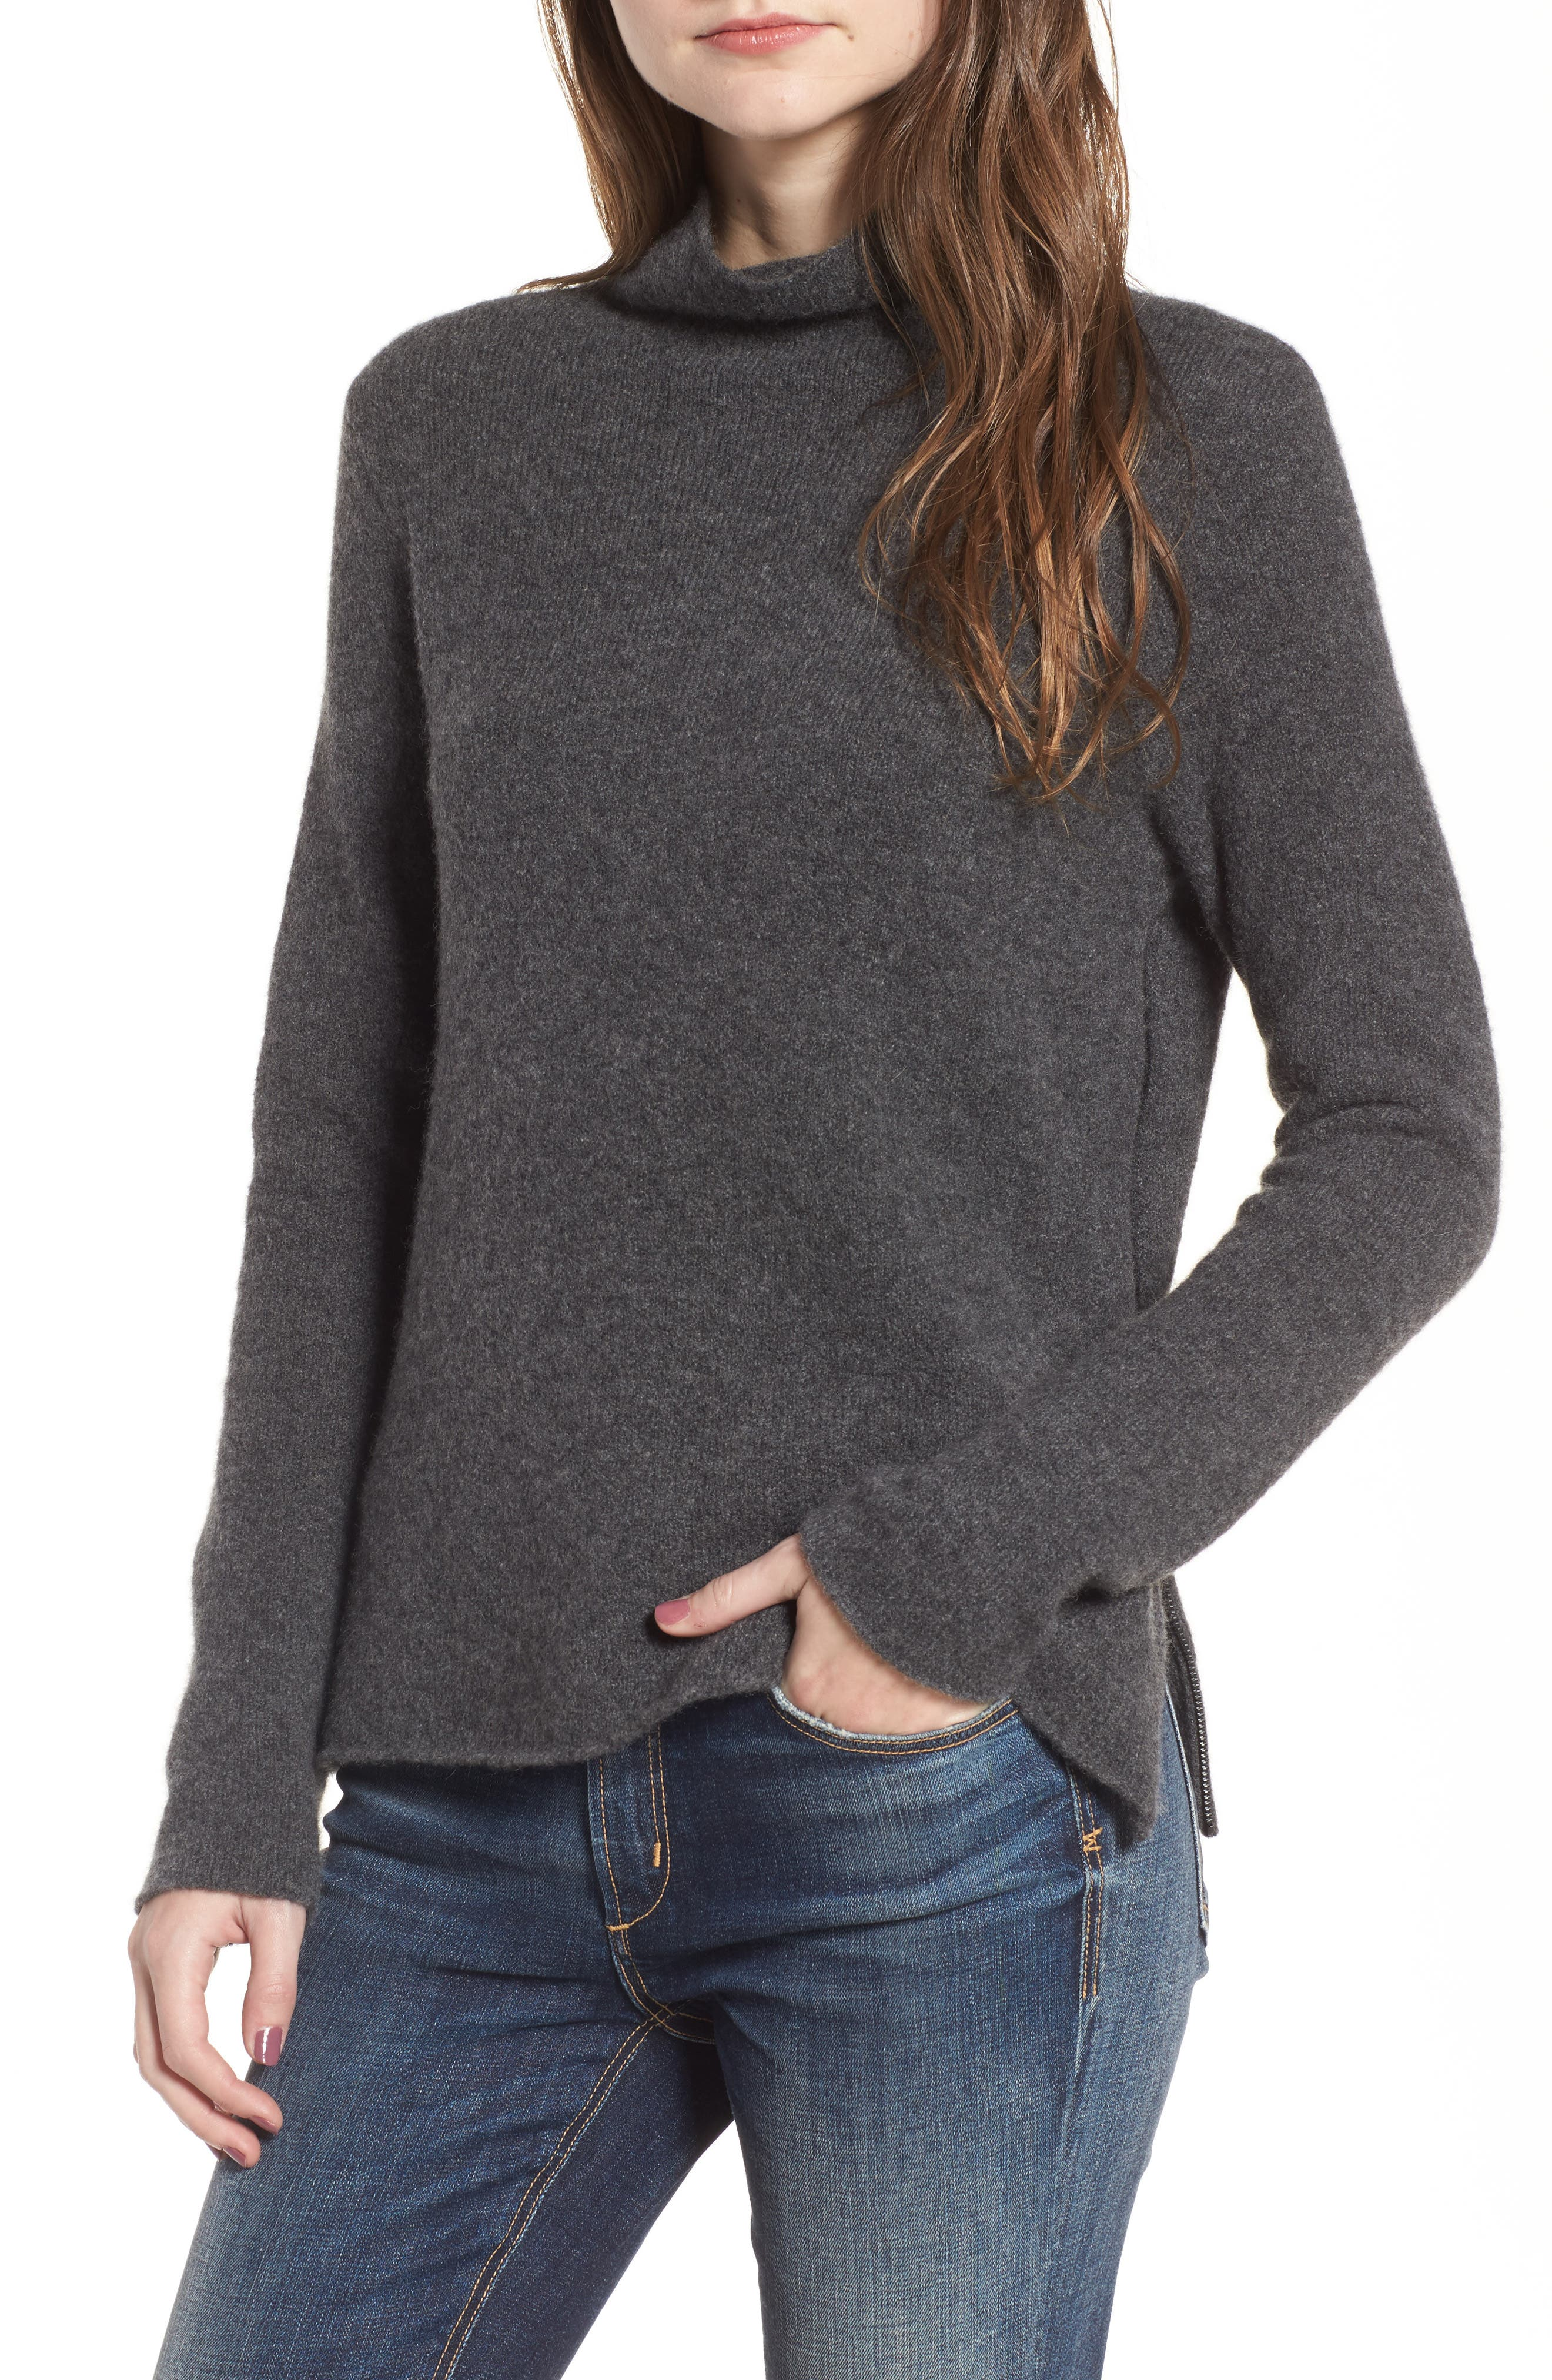 James Perse Stretch Cashmere Mock Neck Sweater